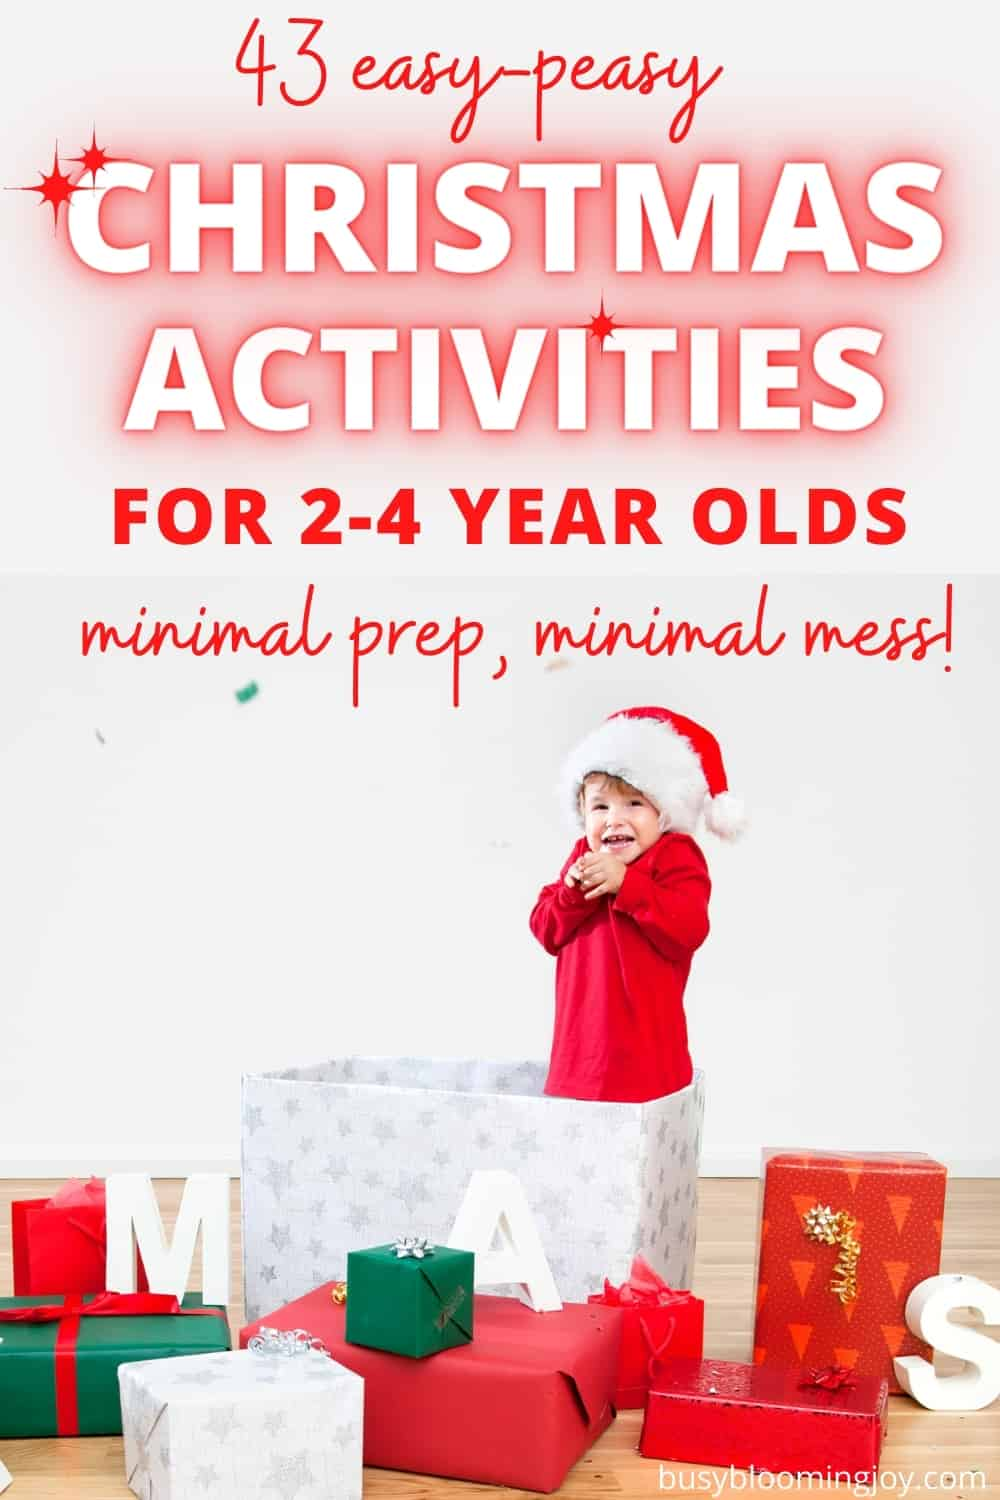 Christmas activities for toddlers and preschoolers feature image